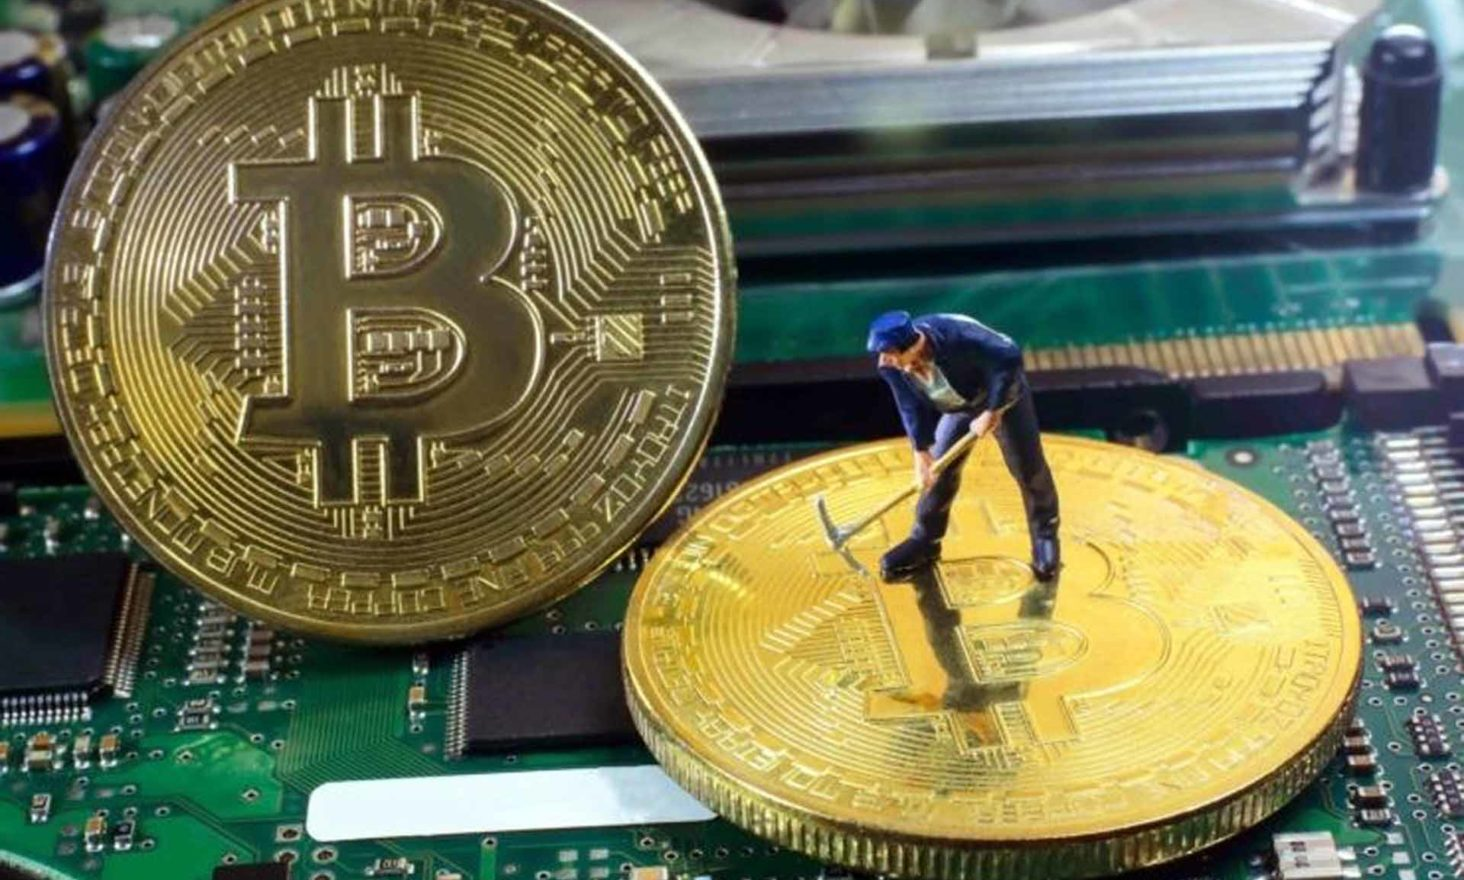 Workers Are Stealing Their Employers' Power to Mine Bitcoin